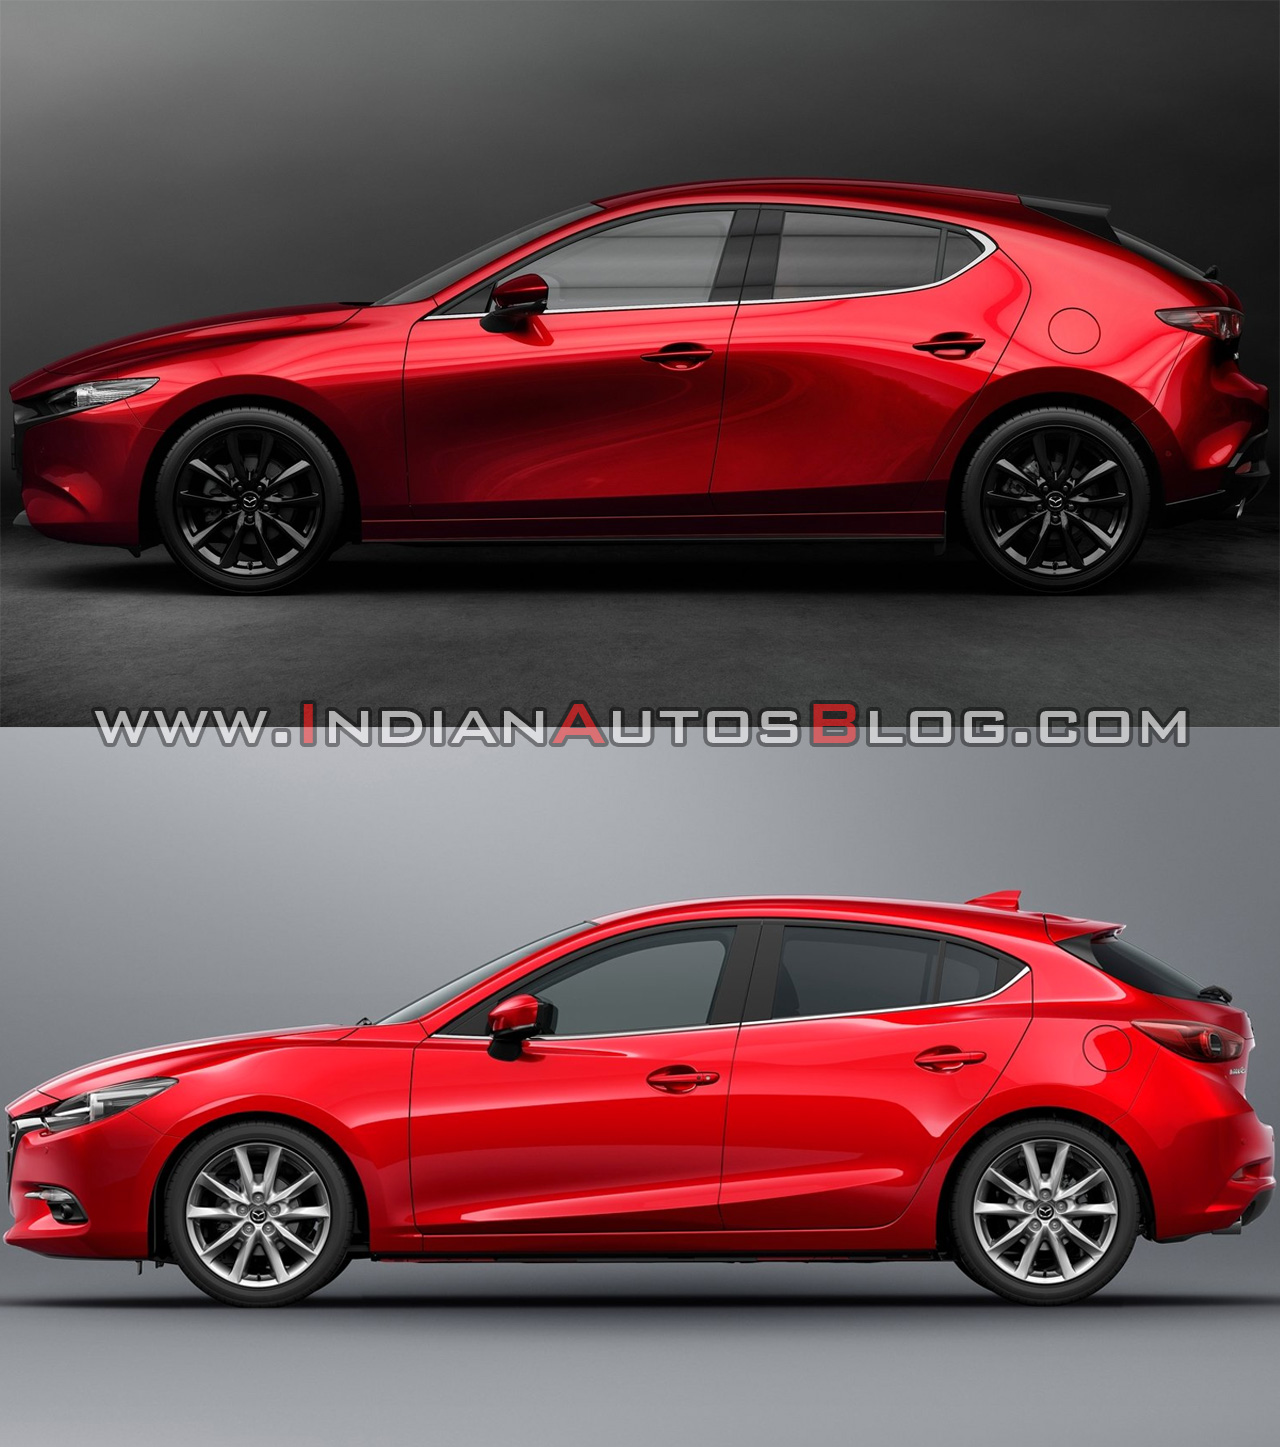 2019 Mazda3 Vs 2016 Mazda3 Profile